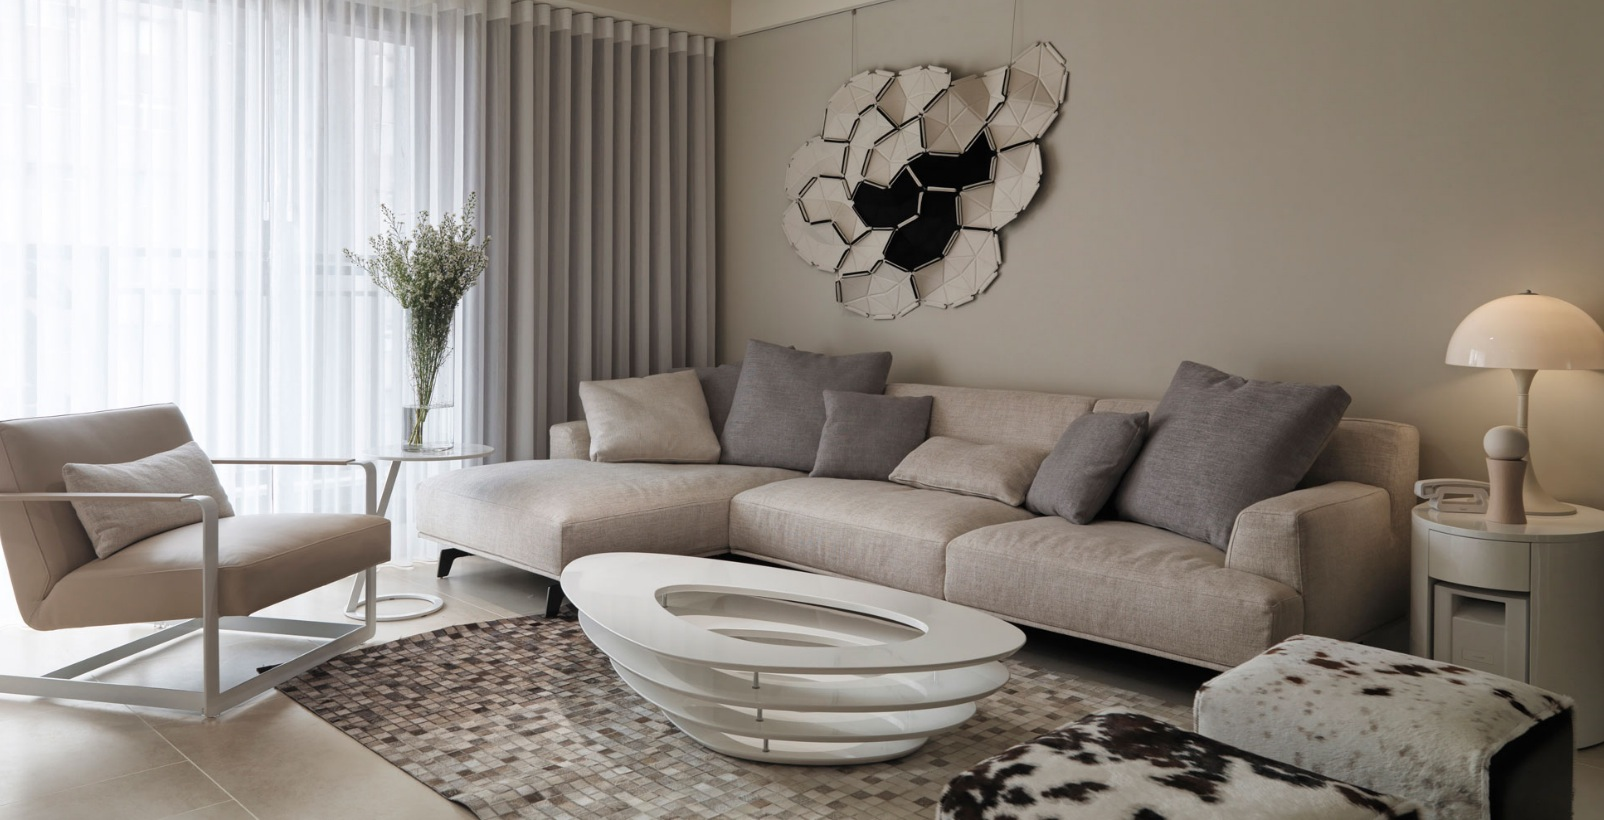 Neutral contemporary apartment by w c h design studio for Living room decorating ideas neutral colors